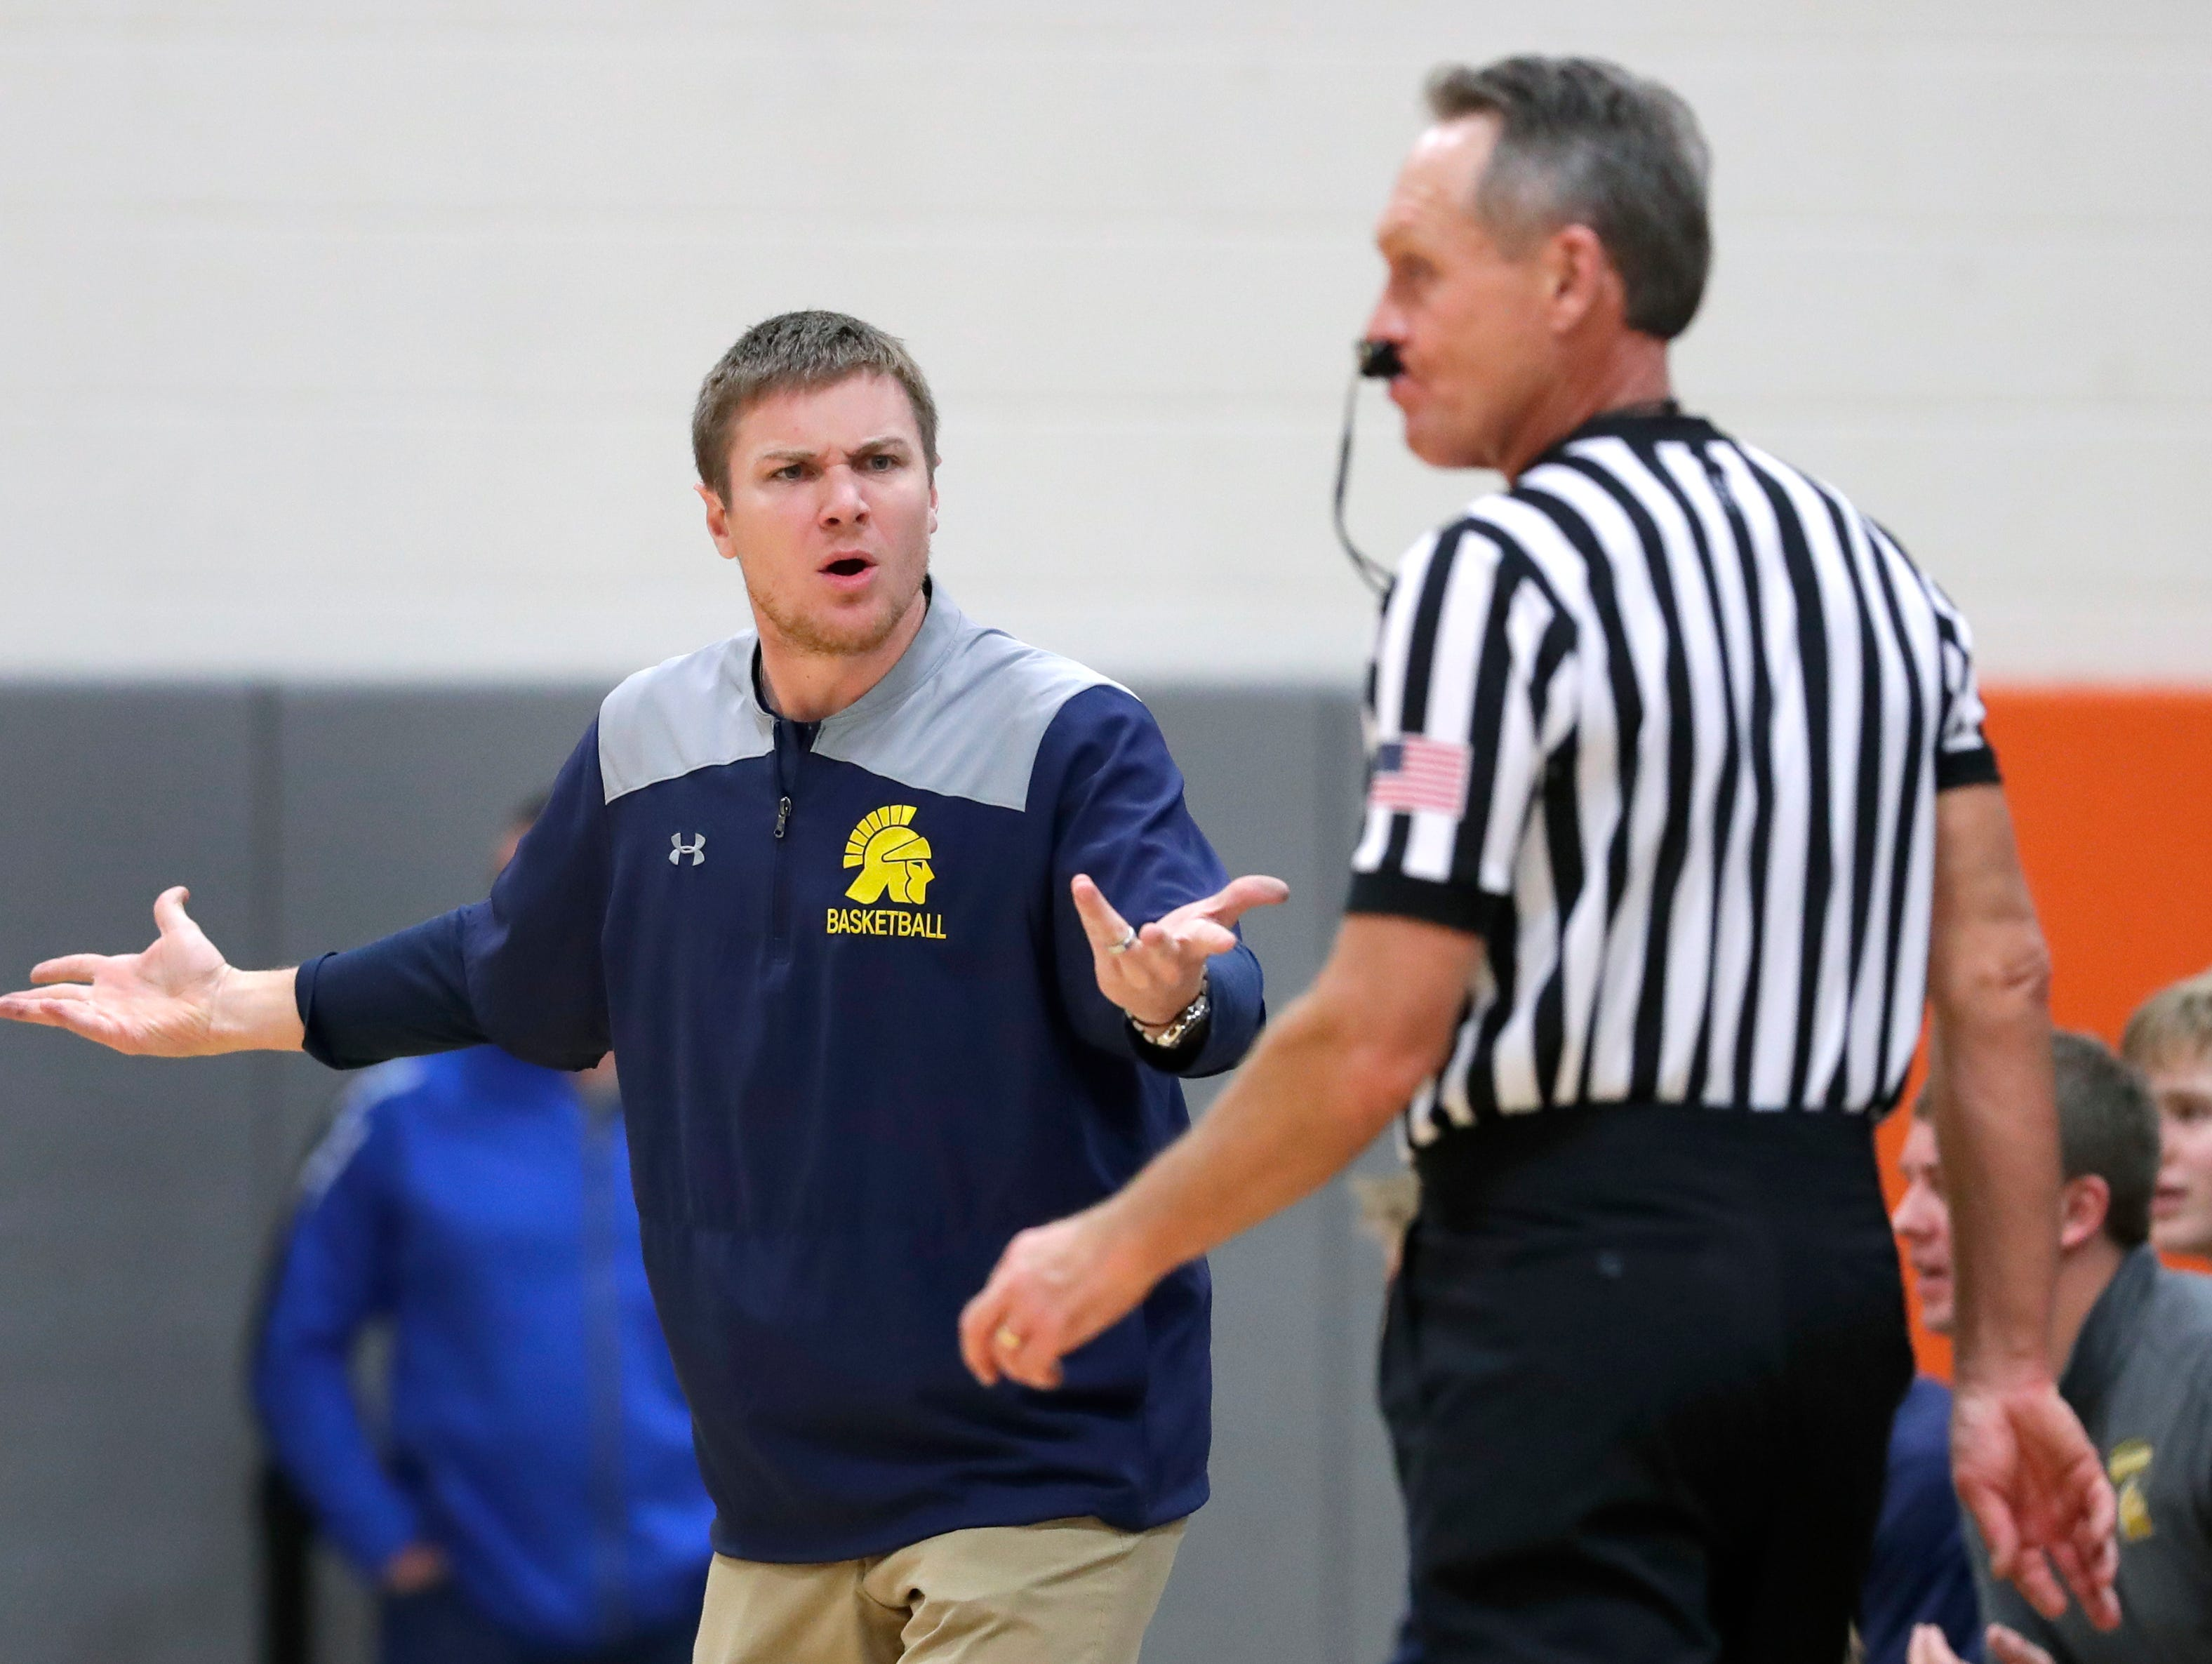 Wausau West High School's coach Nate Lemmens questions a referee's call against his team as they play Appleton West during their boys basketball game Friday, December 28, 2018, in Appleton, Wis. 